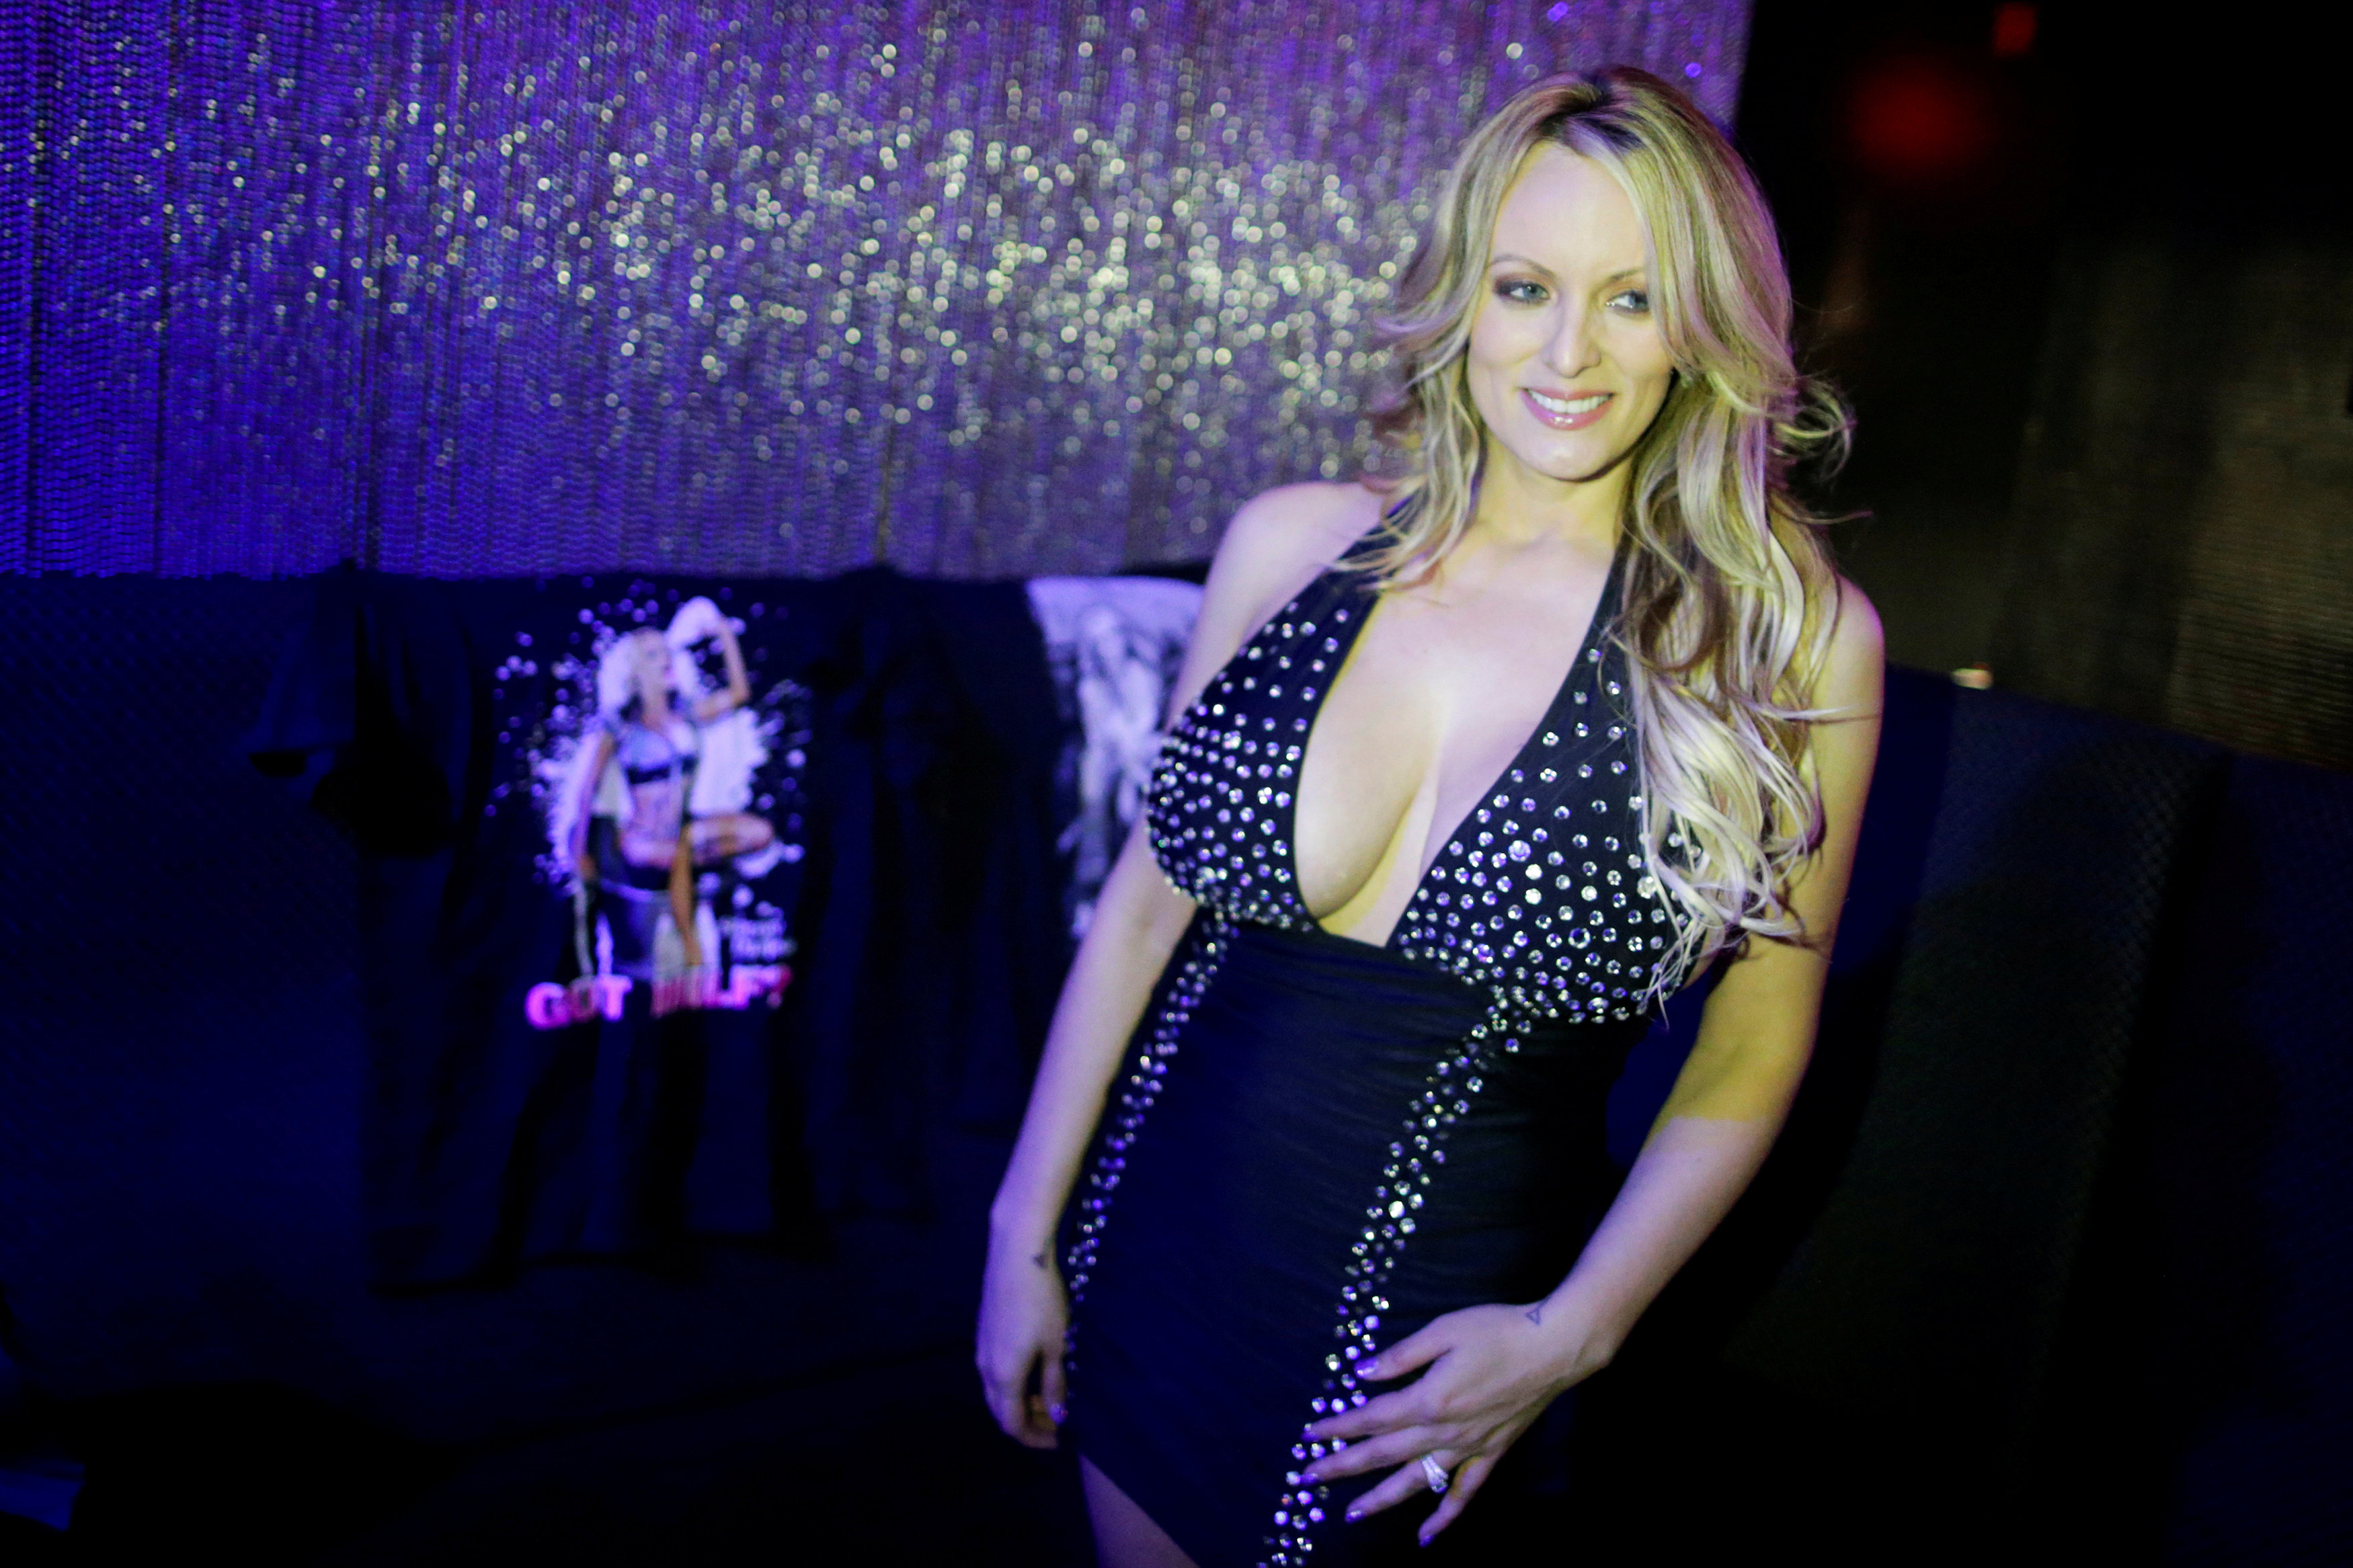 Adult-film actress Clifford, also known as Stormy Daniels, poses for pictures at the Gossip Gentleman club in Long Island